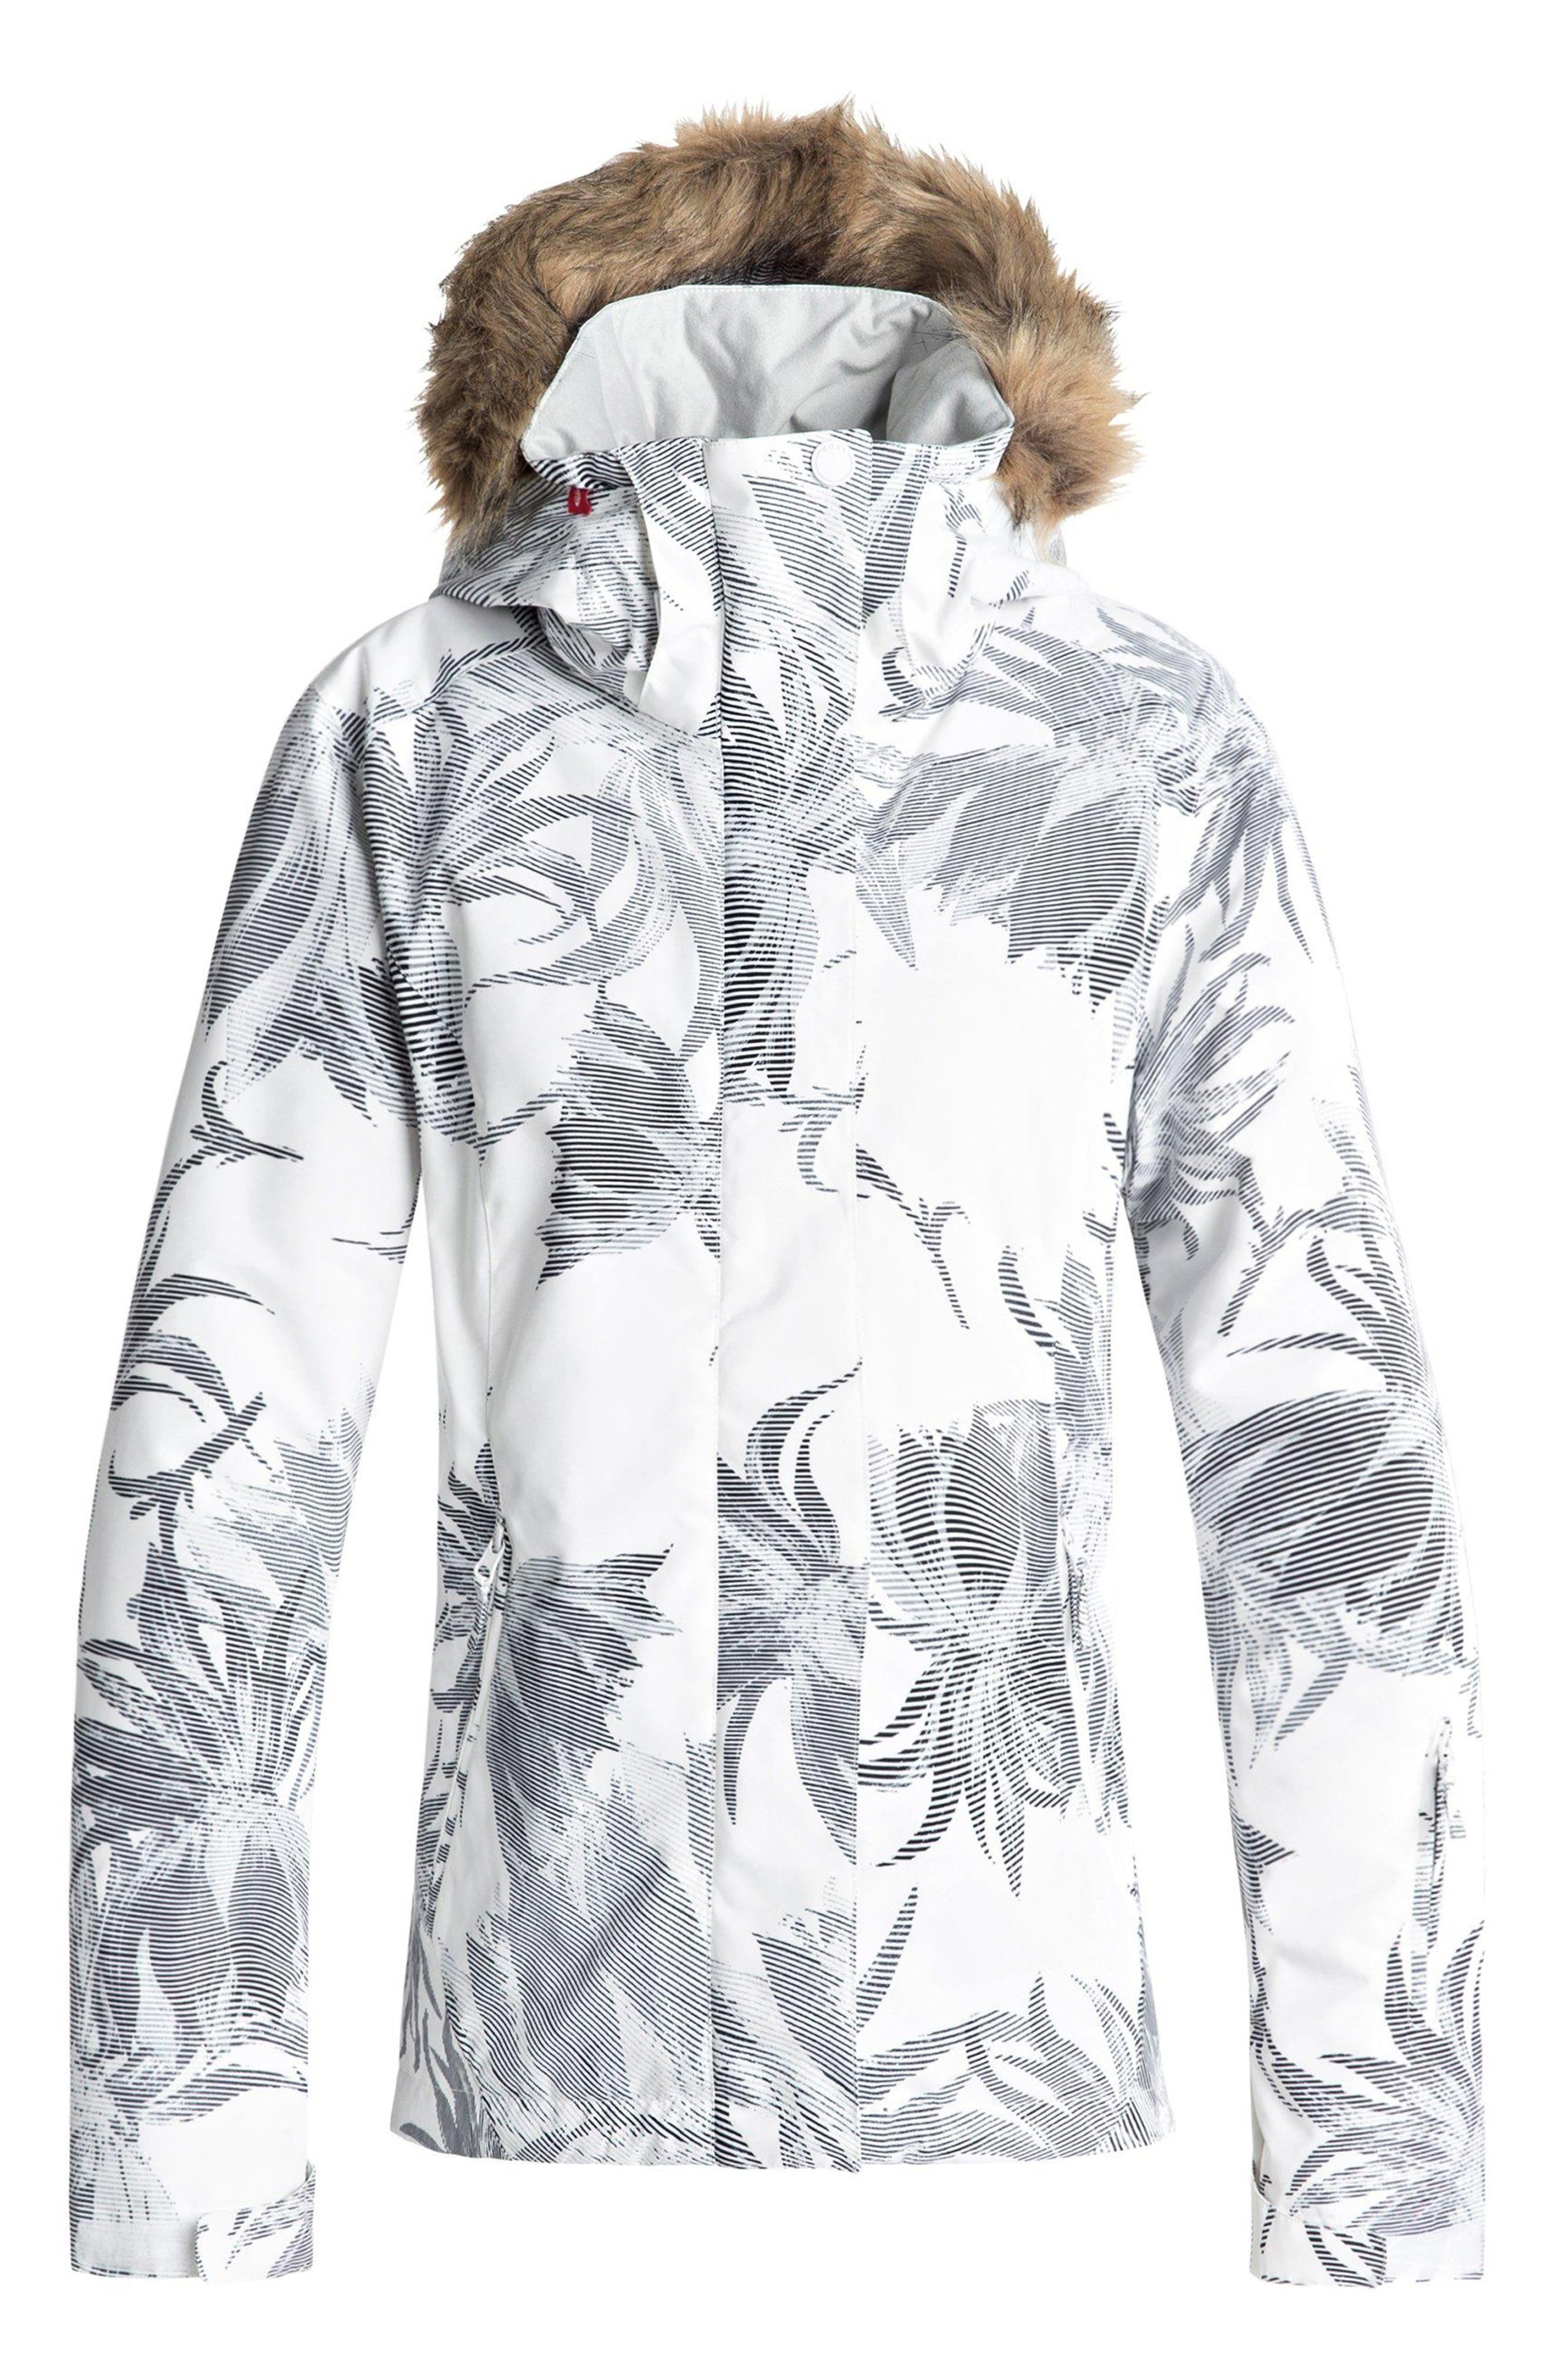 Jet Ski Slim Fit Waterproof WarmFlight<sup>®</sup> Insulated Snow Jacket with Faux Fur Trim,                             Main thumbnail 1, color,                             BRIGHT WHITE/ SWELL FLOWERS